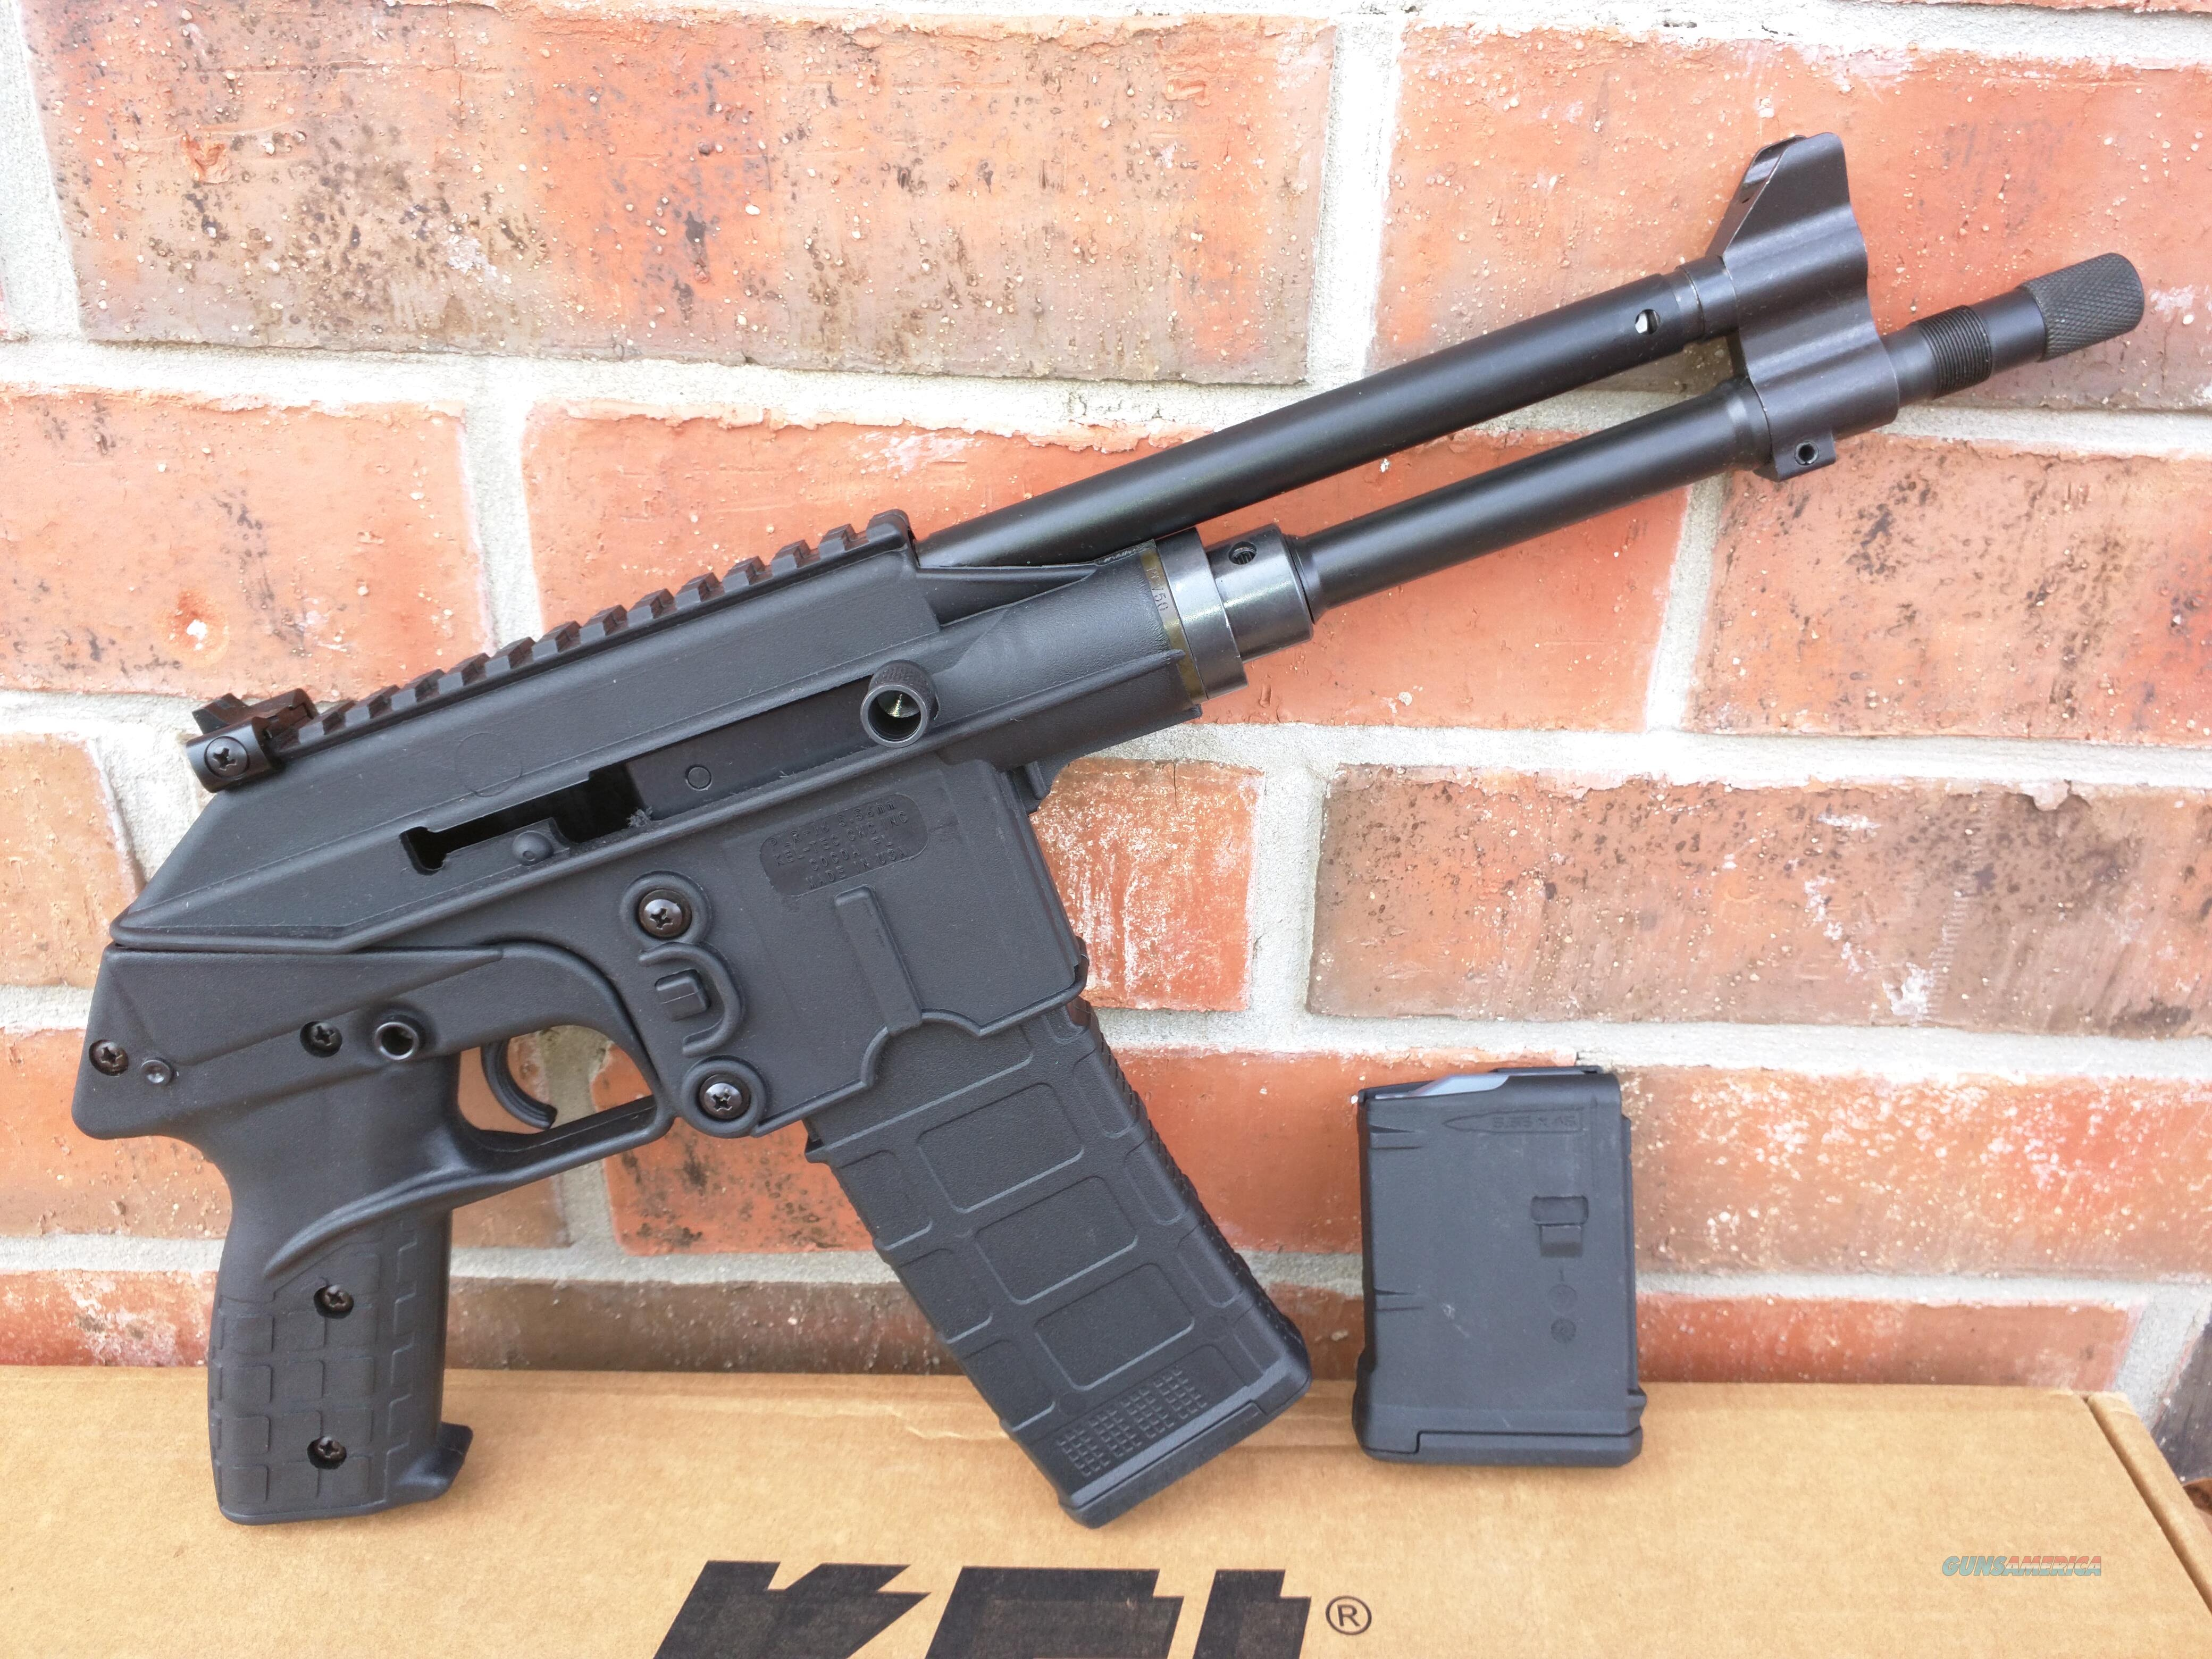 "Keltec Kel Tec PLR16  PLR 16, AR 15 Pistol, 30 Round and 10 Round Mags, 5.56/.223, Lightweight, 9"", Accepts all AR 15 Mags, NIB FREE LAYAWAY!!! SALE!!  Guns > Rifles > AR-15 Rifles - Small Manufacturers > Complete Rifle"